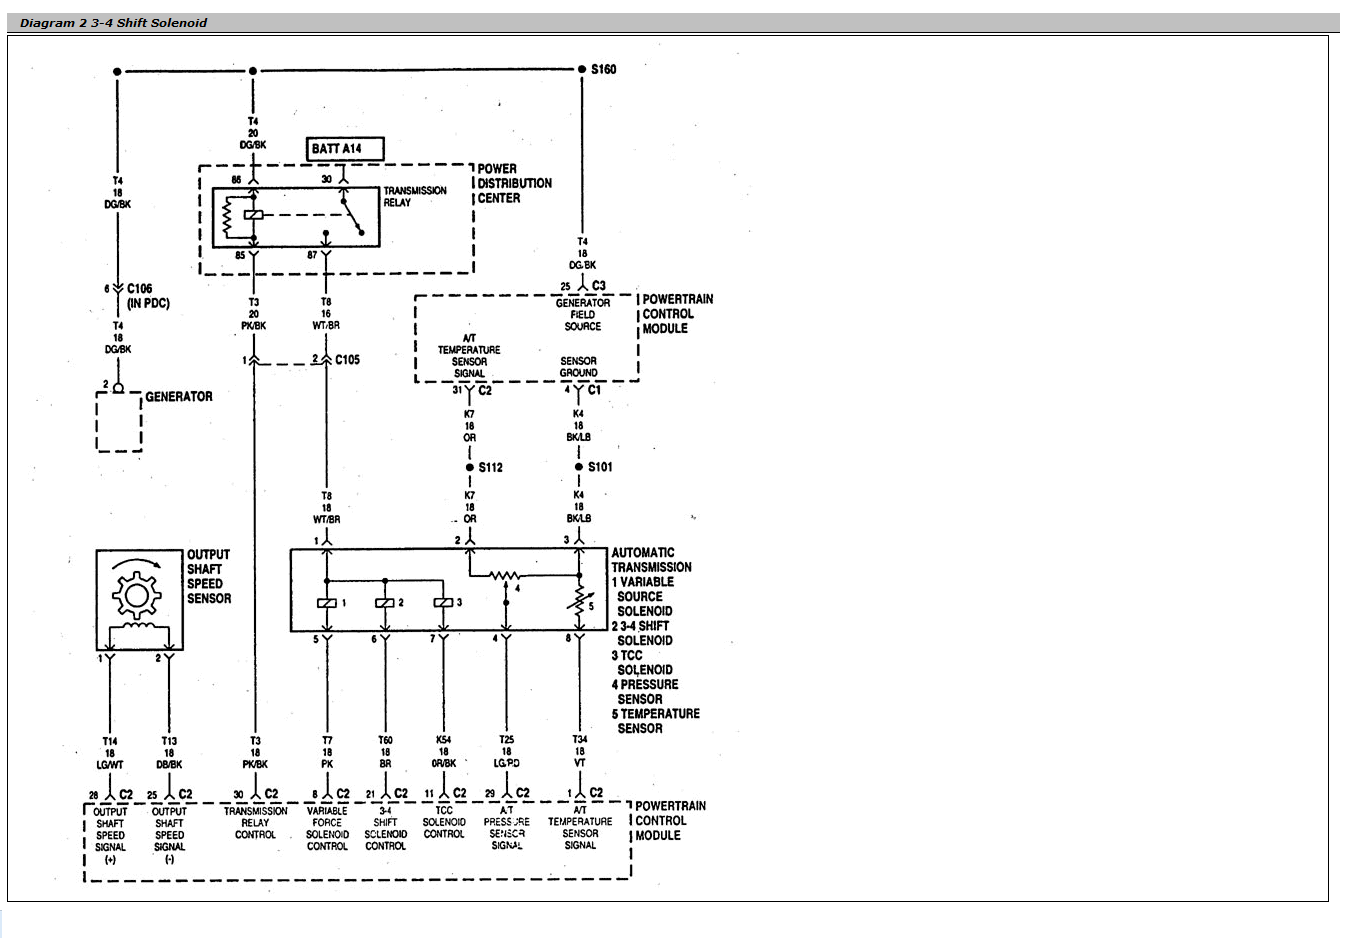 2013 02 14_190258_2013 02 14_120032 need the wiring diagram or schematics complete for a 1997 dodge 2004 dodge dakota radio wiring diagram at soozxer.org